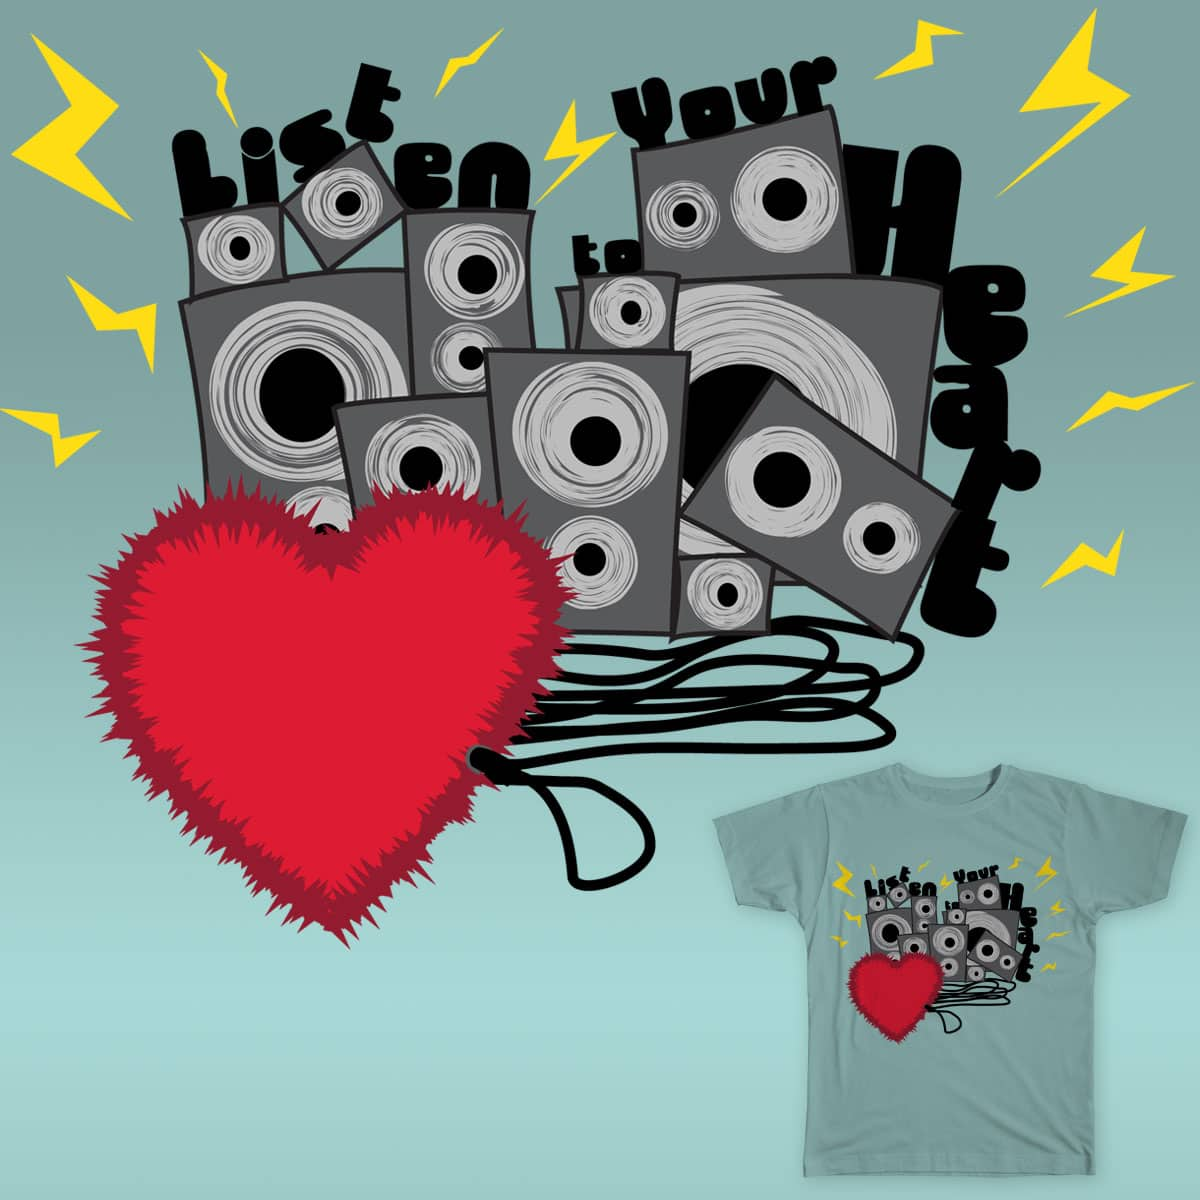 Listen to Your Heart by 3mm4nu31 on Threadless